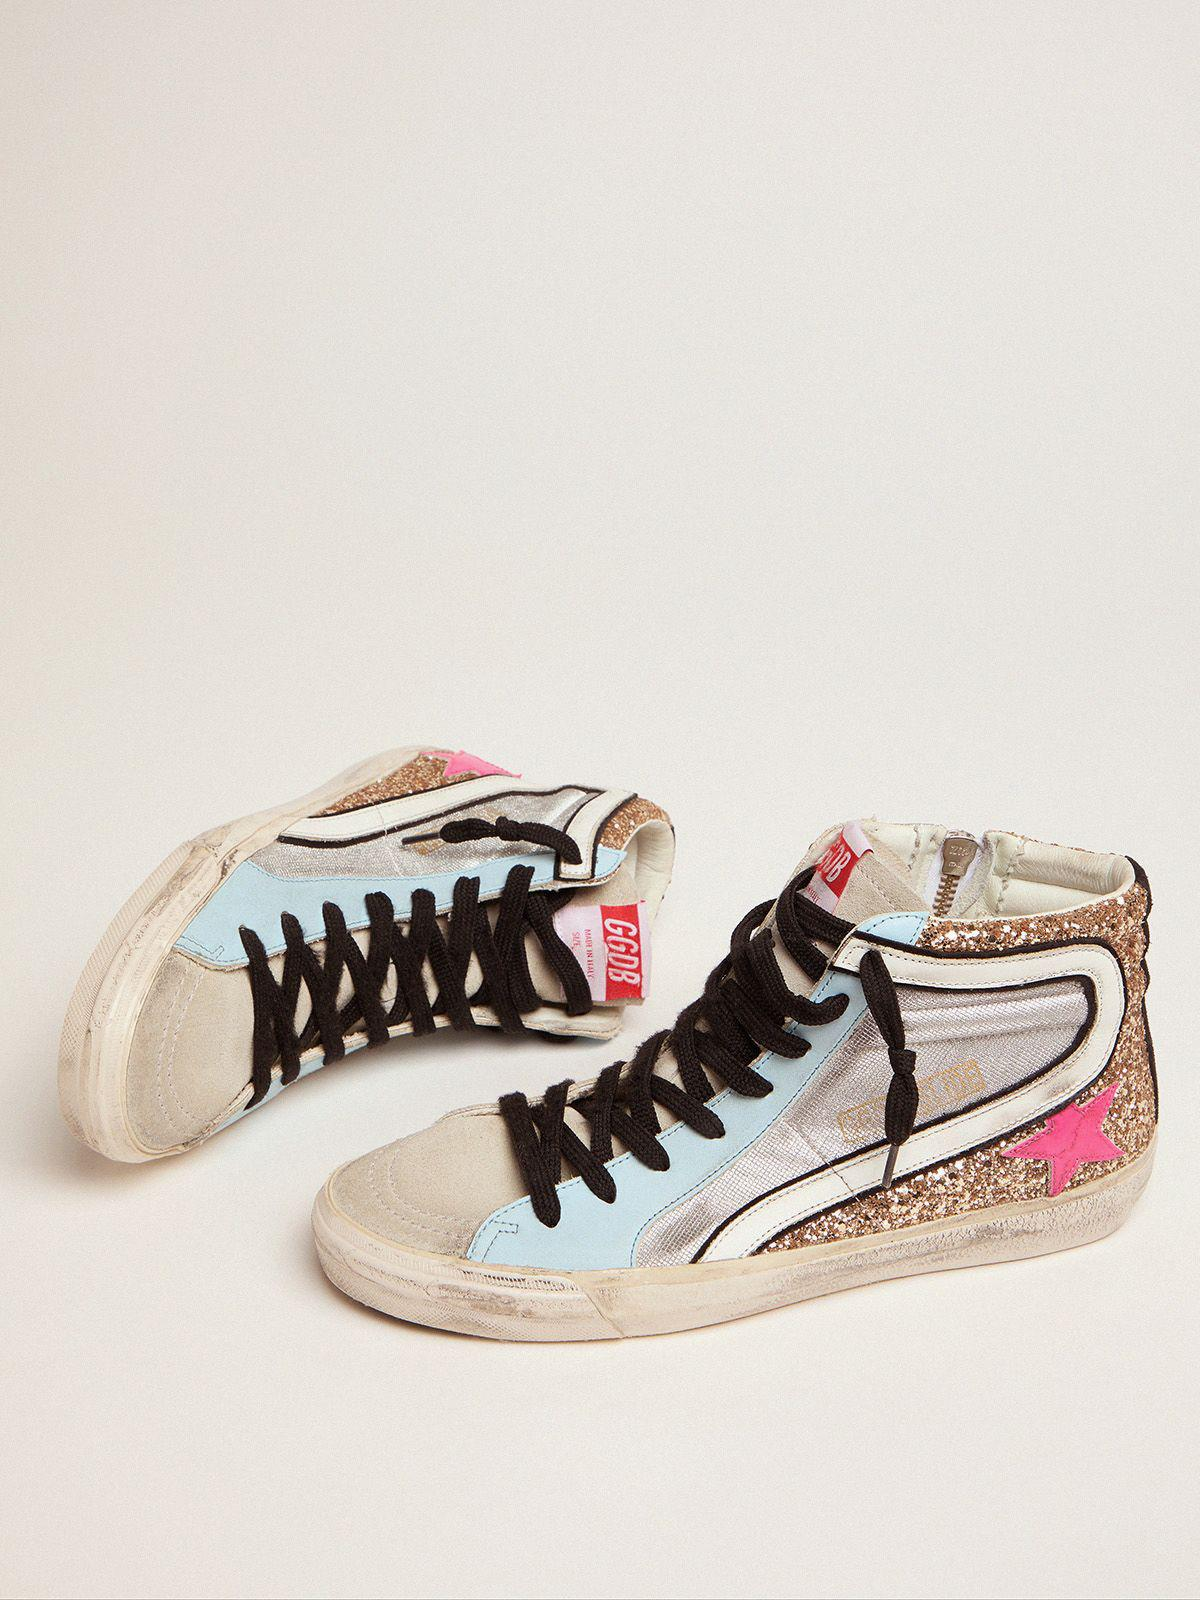 Slide LTD sneakers with glitter and fuchsia star 1